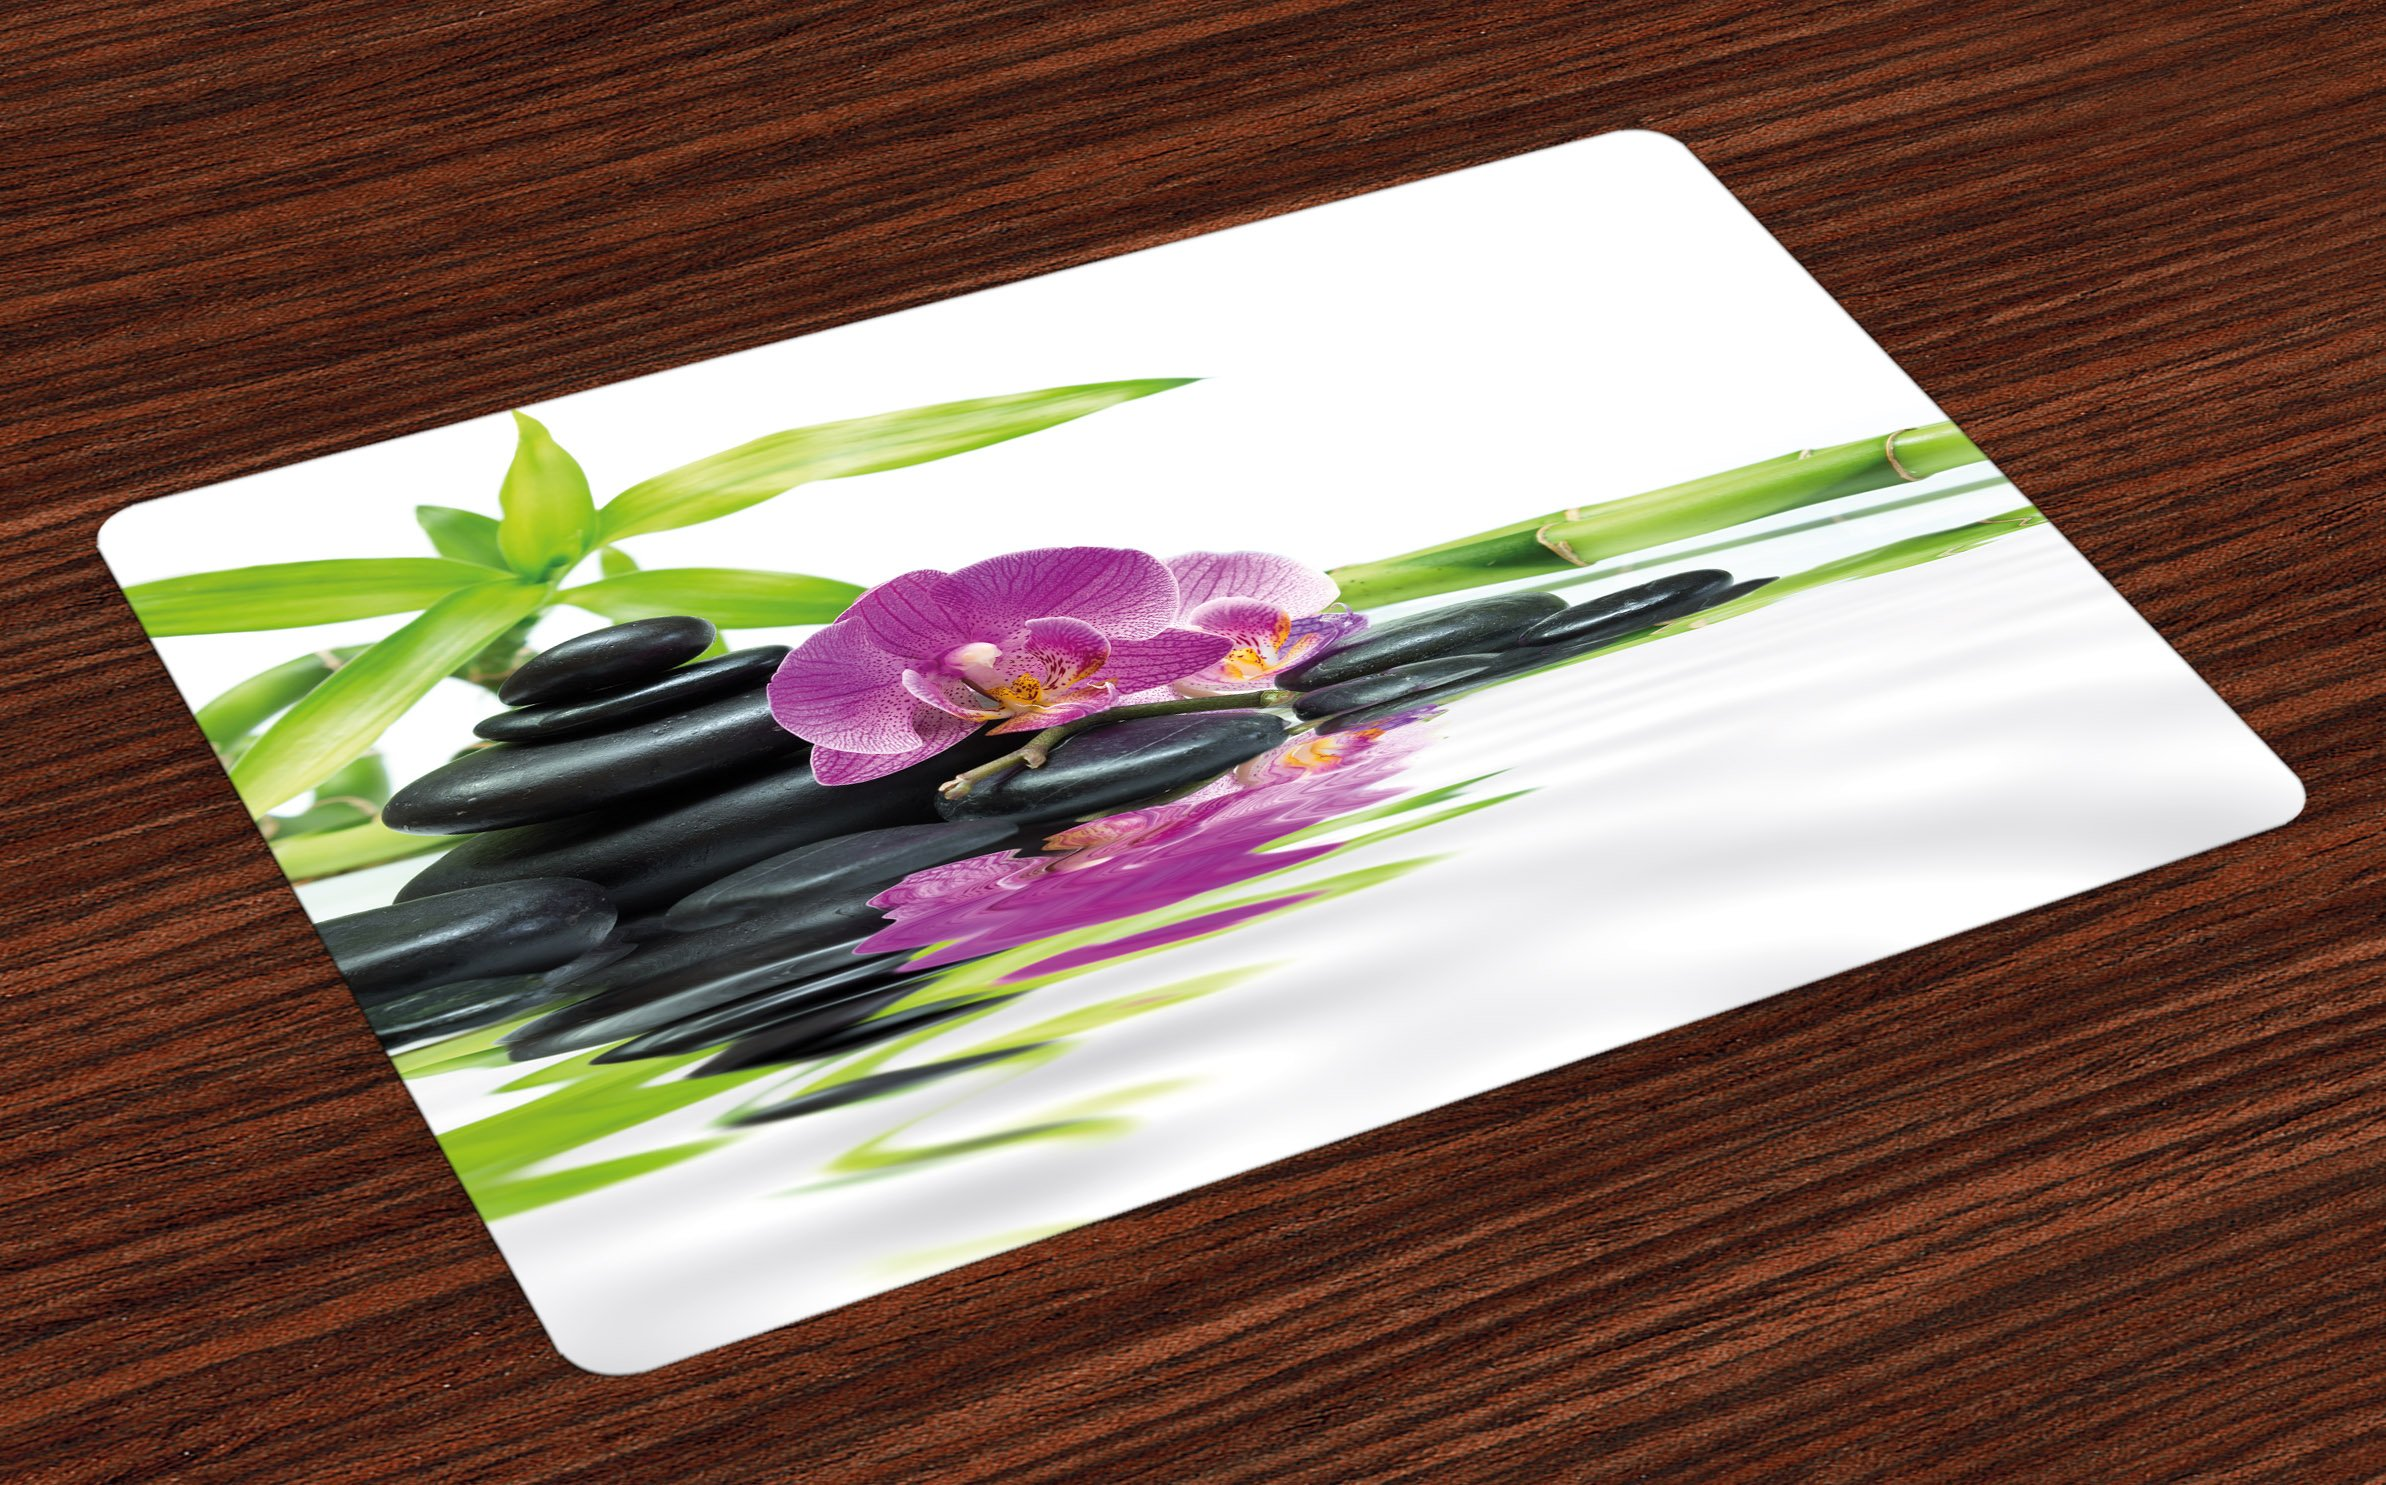 Ambesonne Spa Place Mats Set of 4, Asian Relaxation Ways with Zen Massage Stones Purple Orchid and a Bamboo, Washable Fabric Placemats for Dining Room Kitchen Table Decor, Purple Black and Green